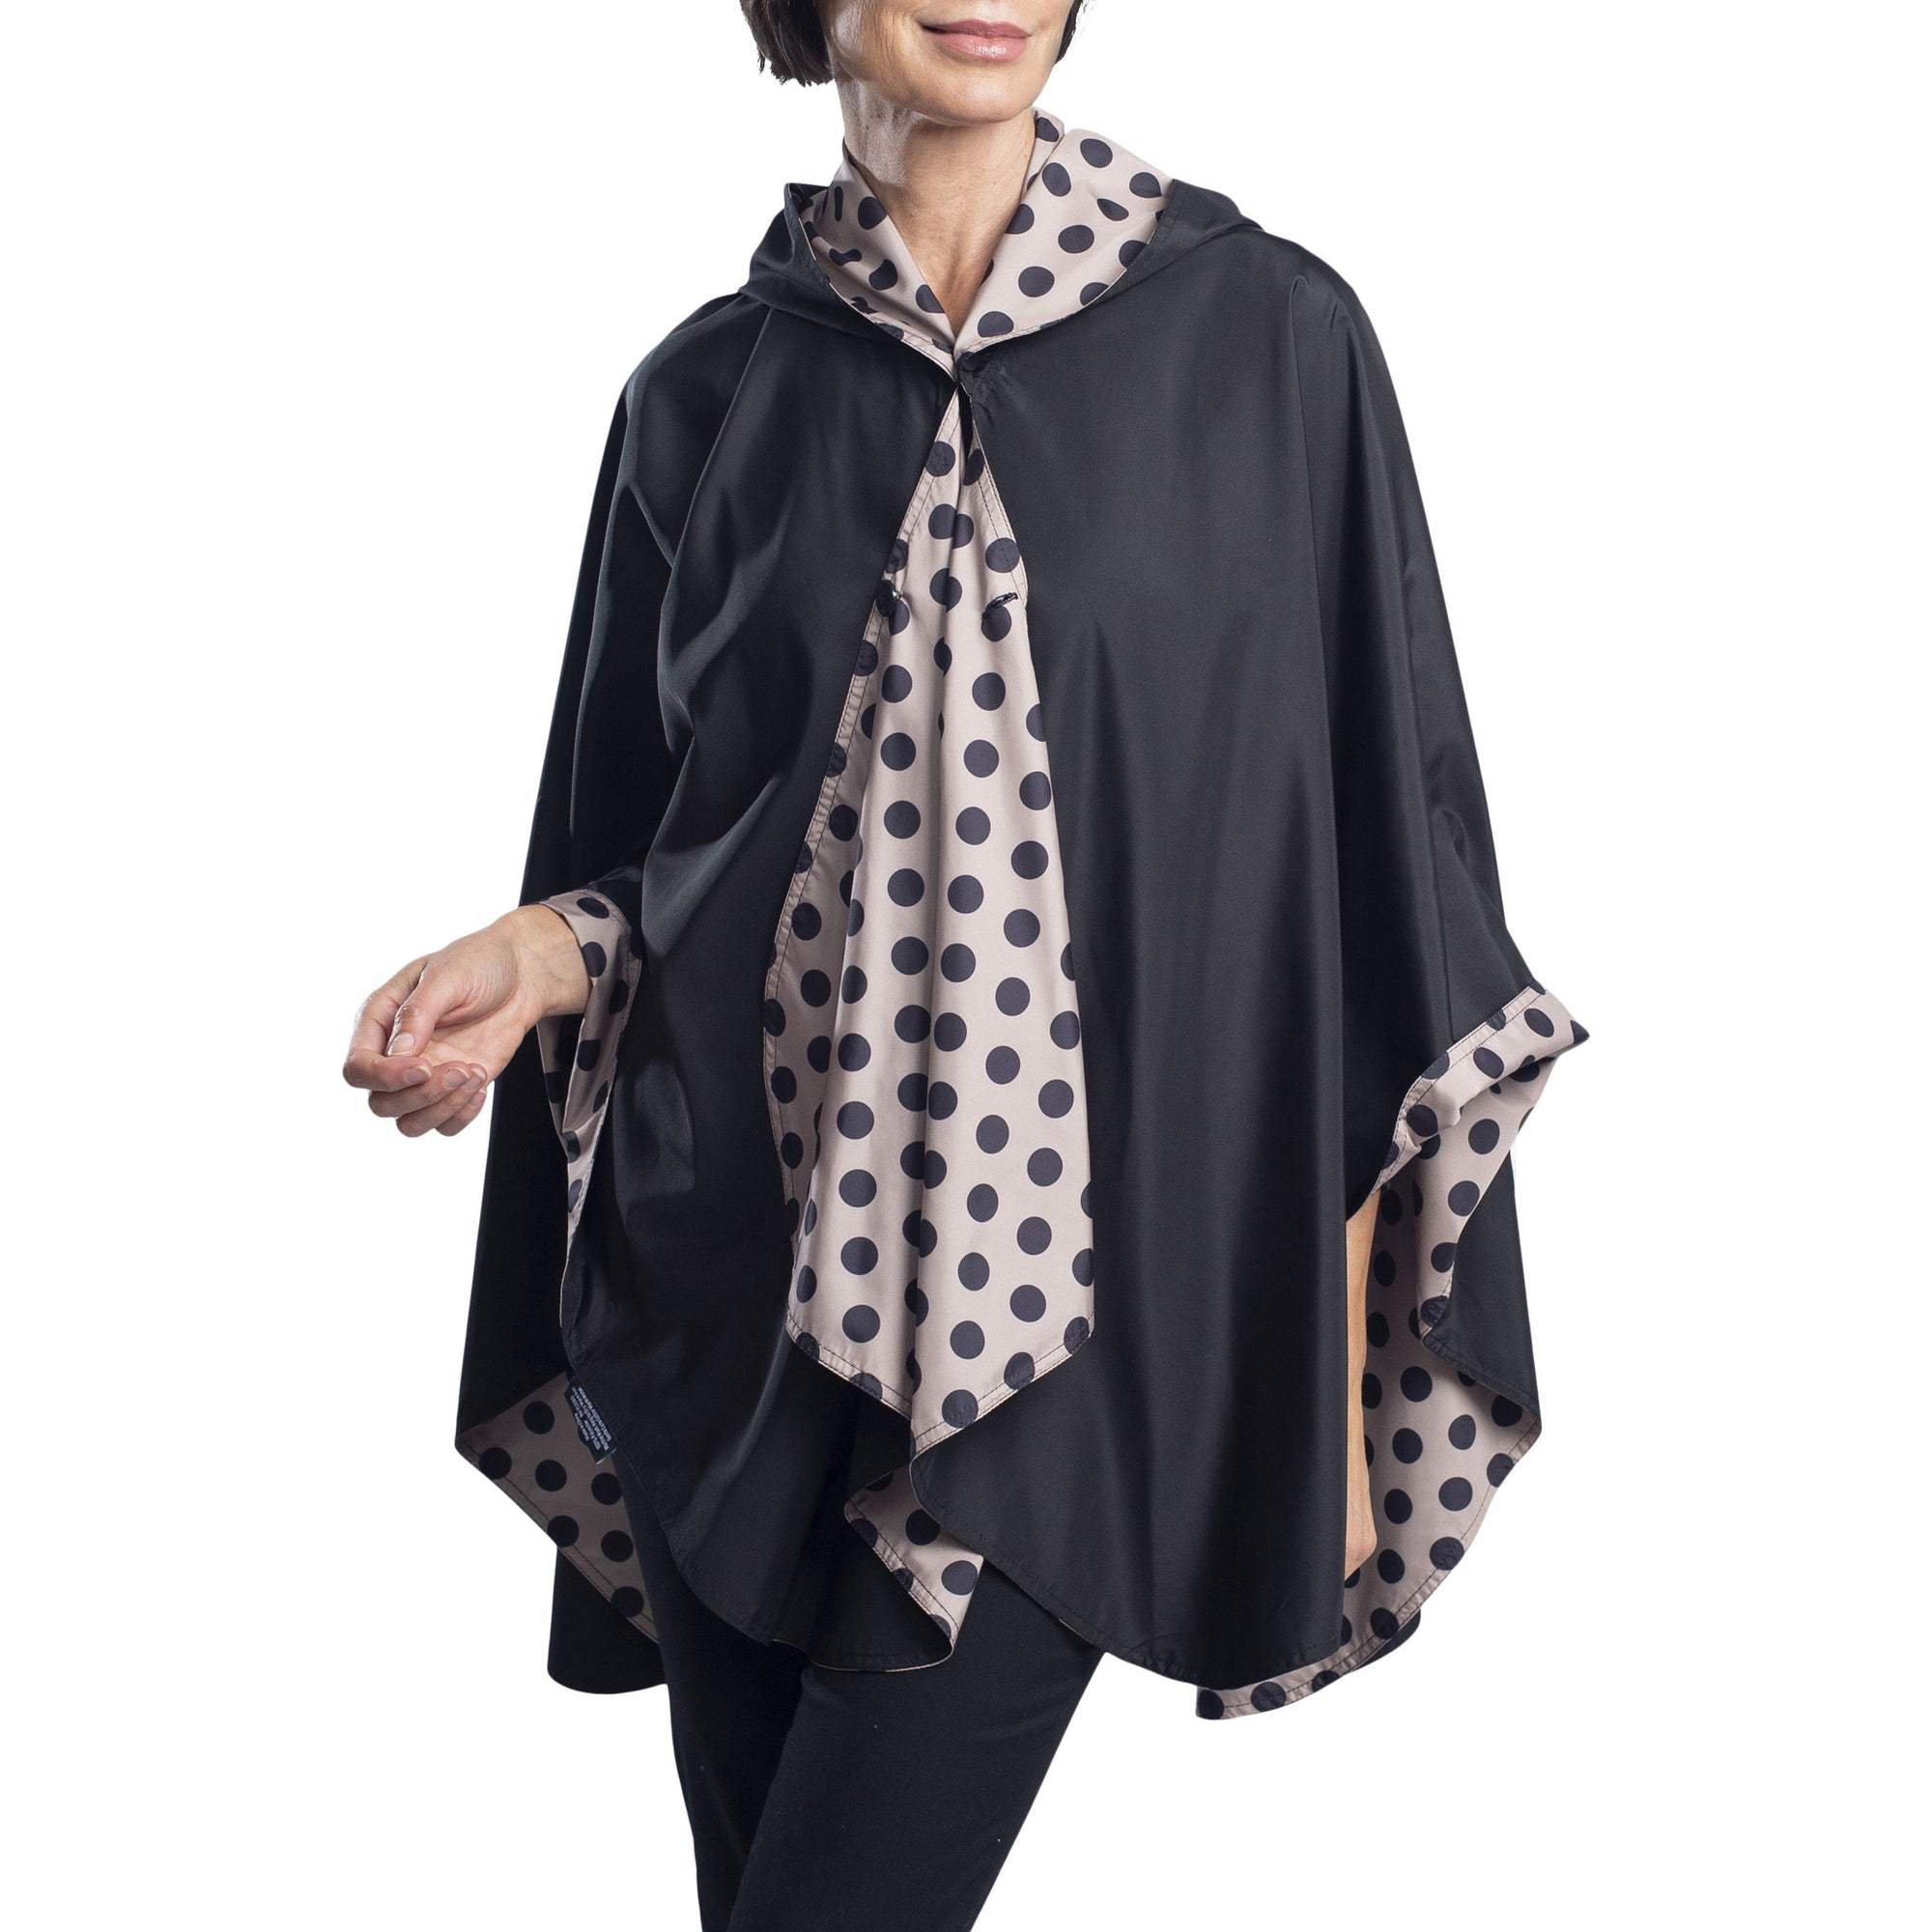 RainCaper Black/Camel Dots Reversible Travel Cape - New!